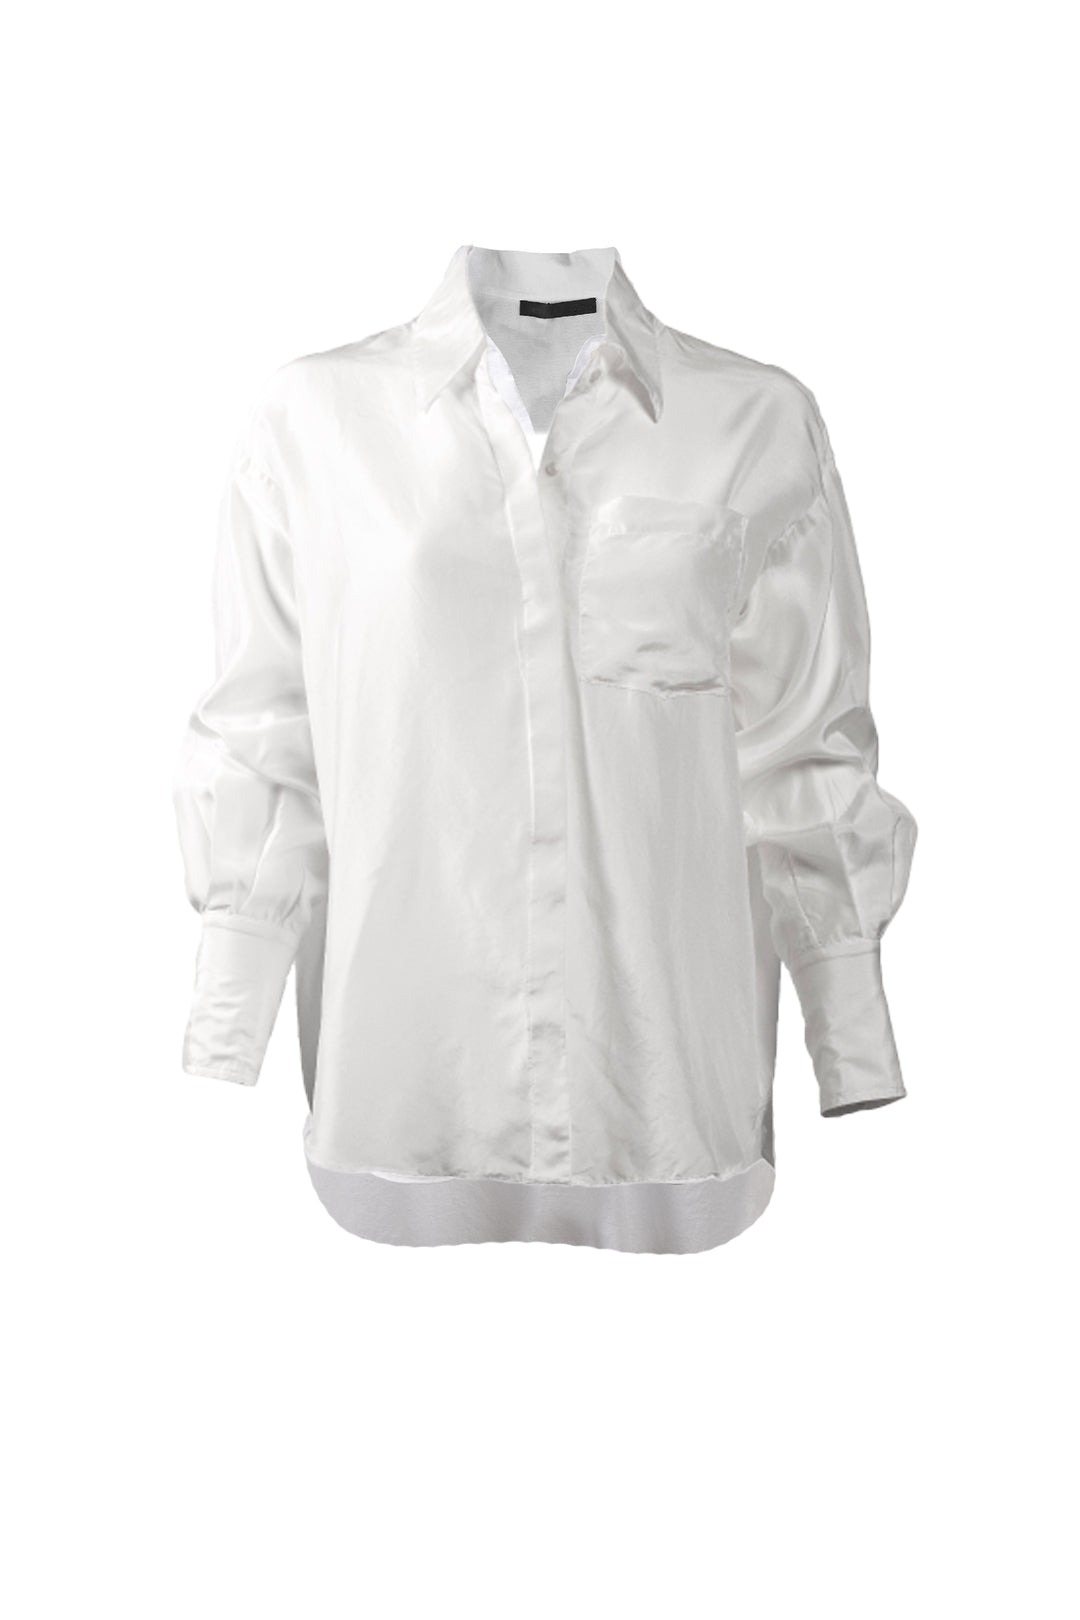 KES Oversized Men Button Down - Silk